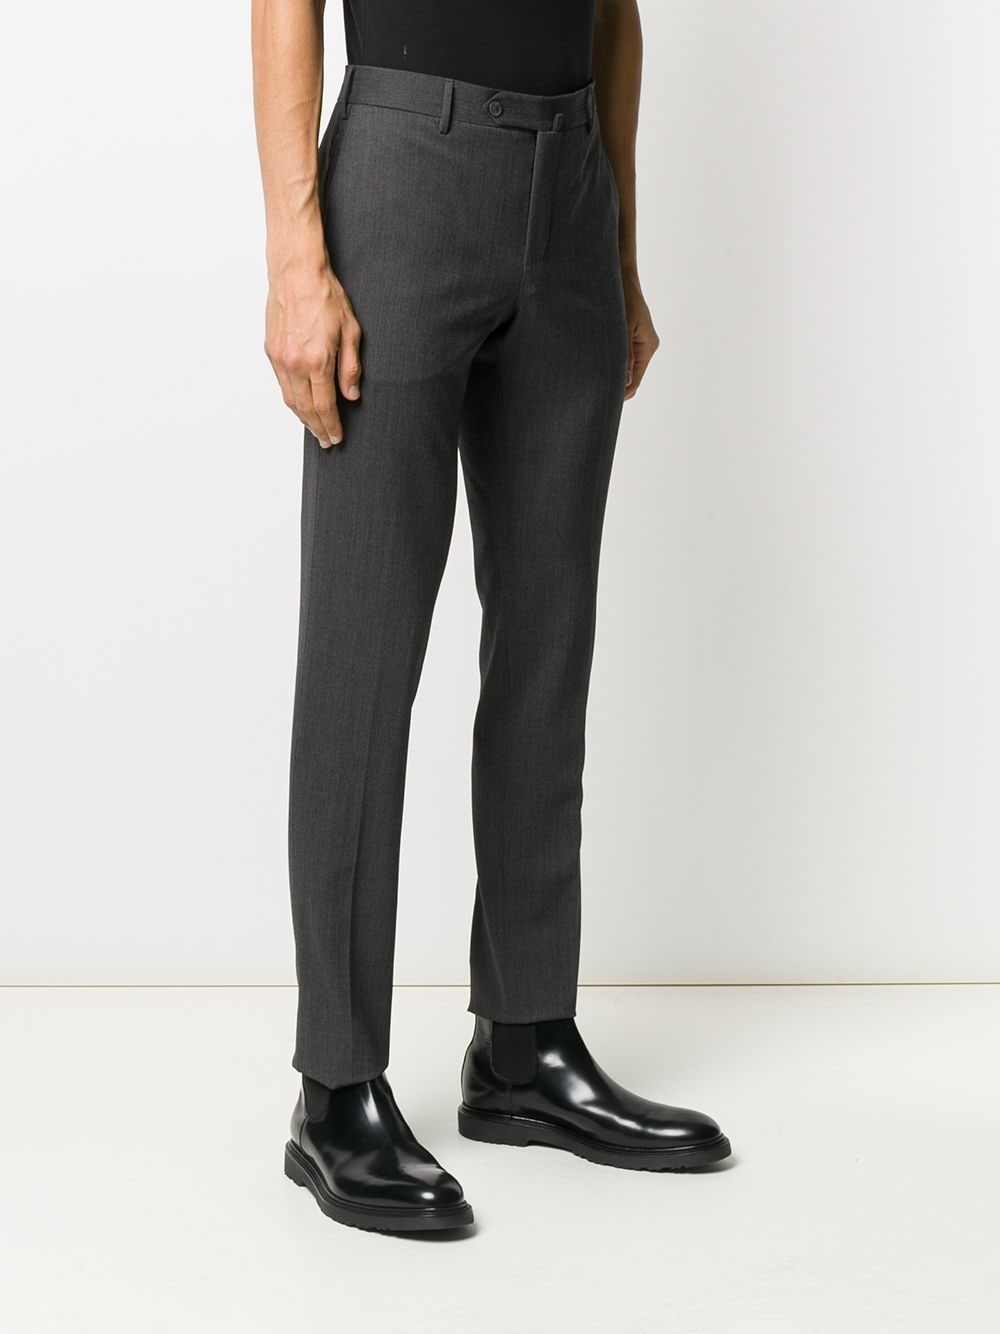 Anthracite grey wool-blend slim-fit tailored trousers   PT01 |  | COKSTVZ00TVL-PO360240